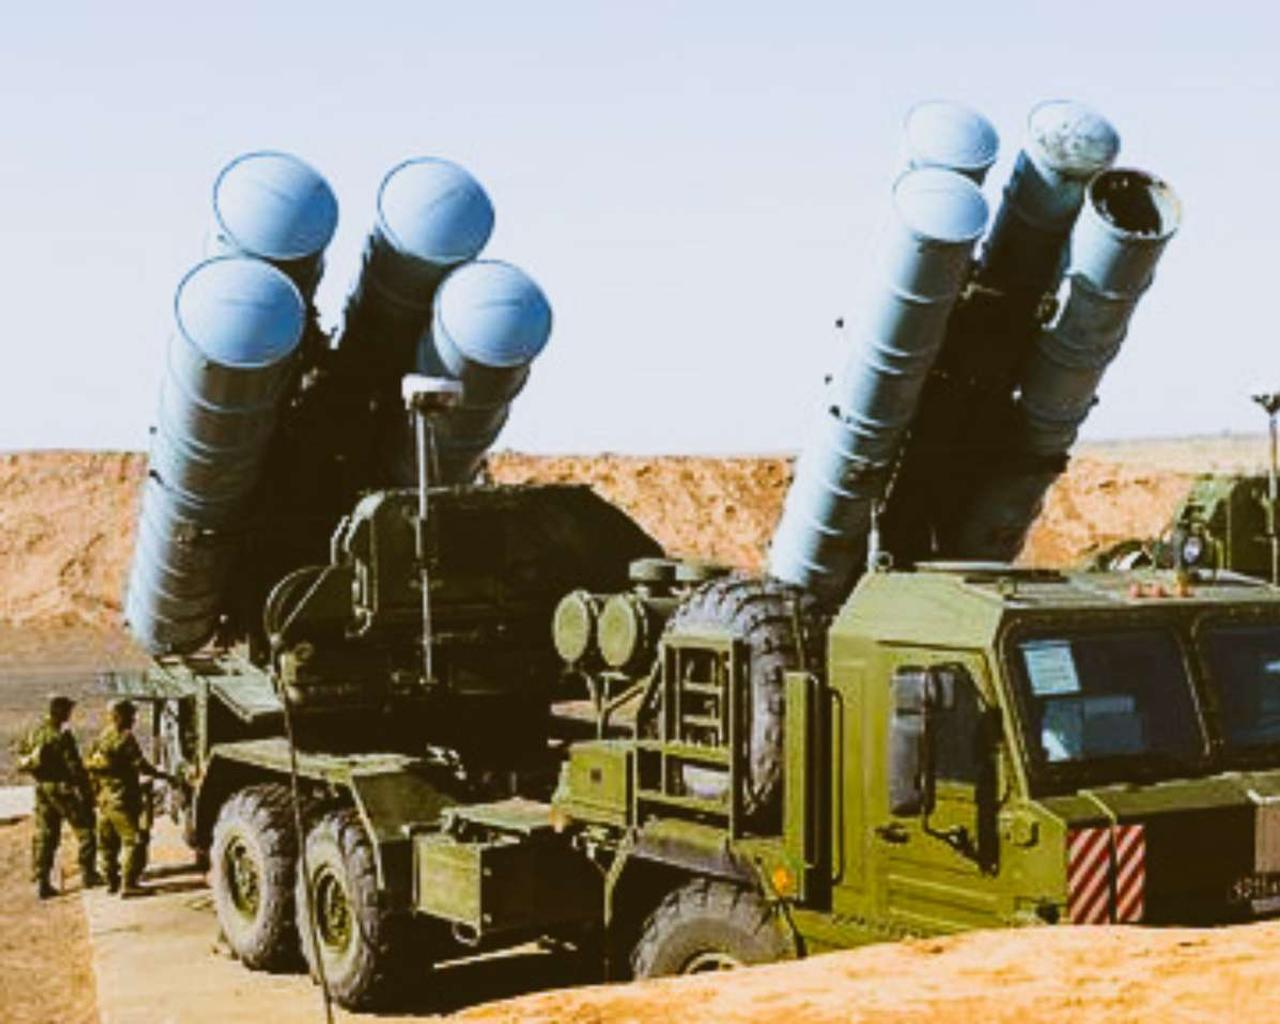 US warned of sanctions over India's purchase of Russian S-400 air defense systems.